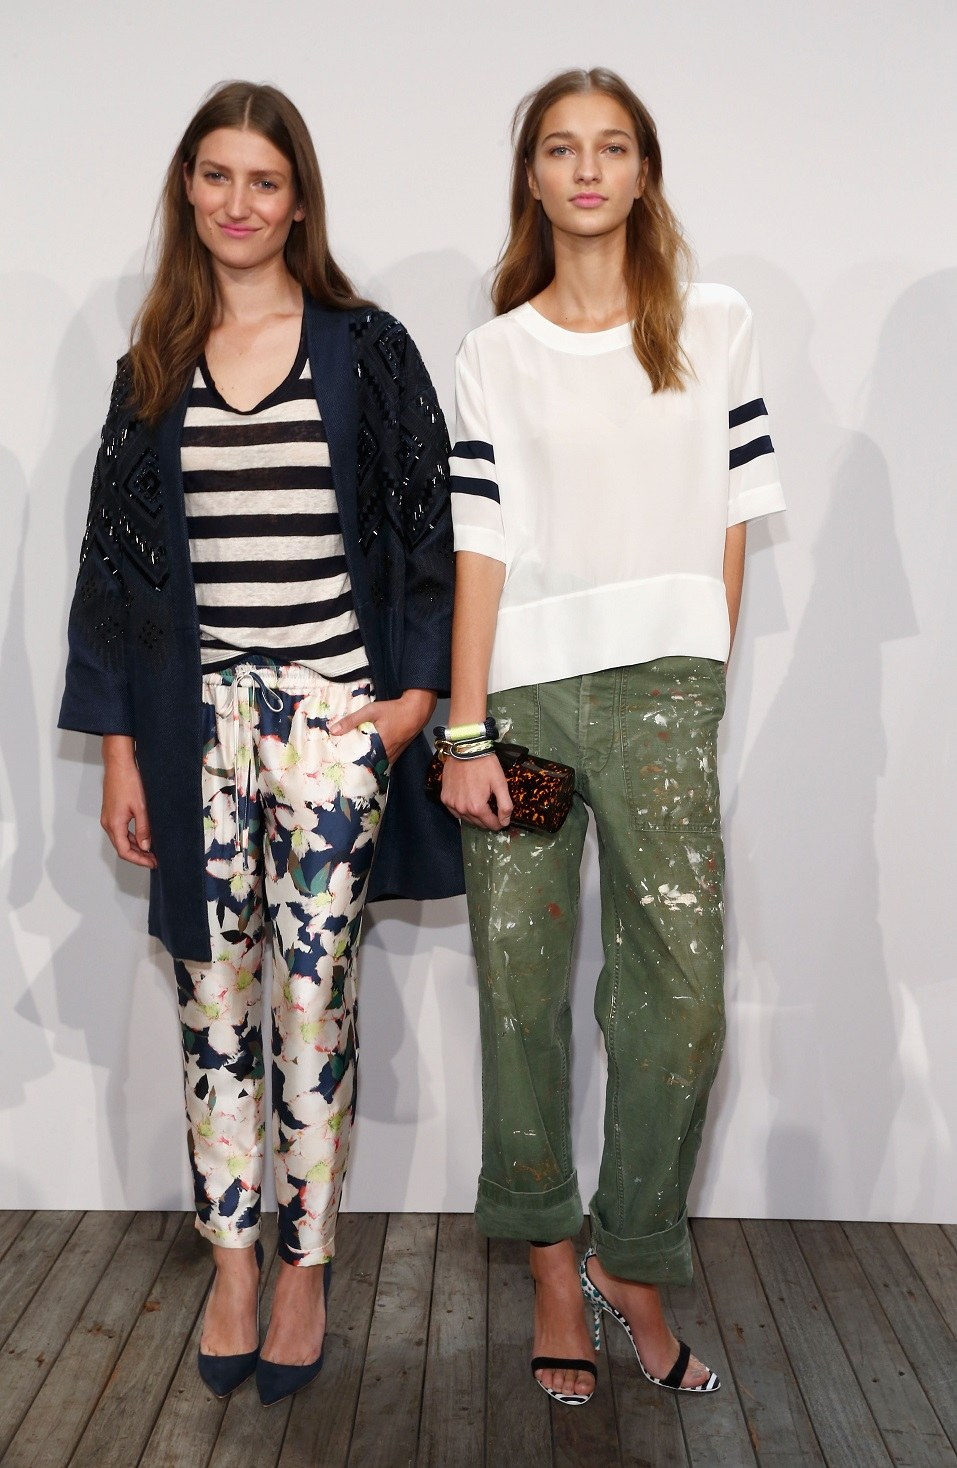 Models pose on the runway at the J.Crew presentation during Mercedes-Benz Fashion Week